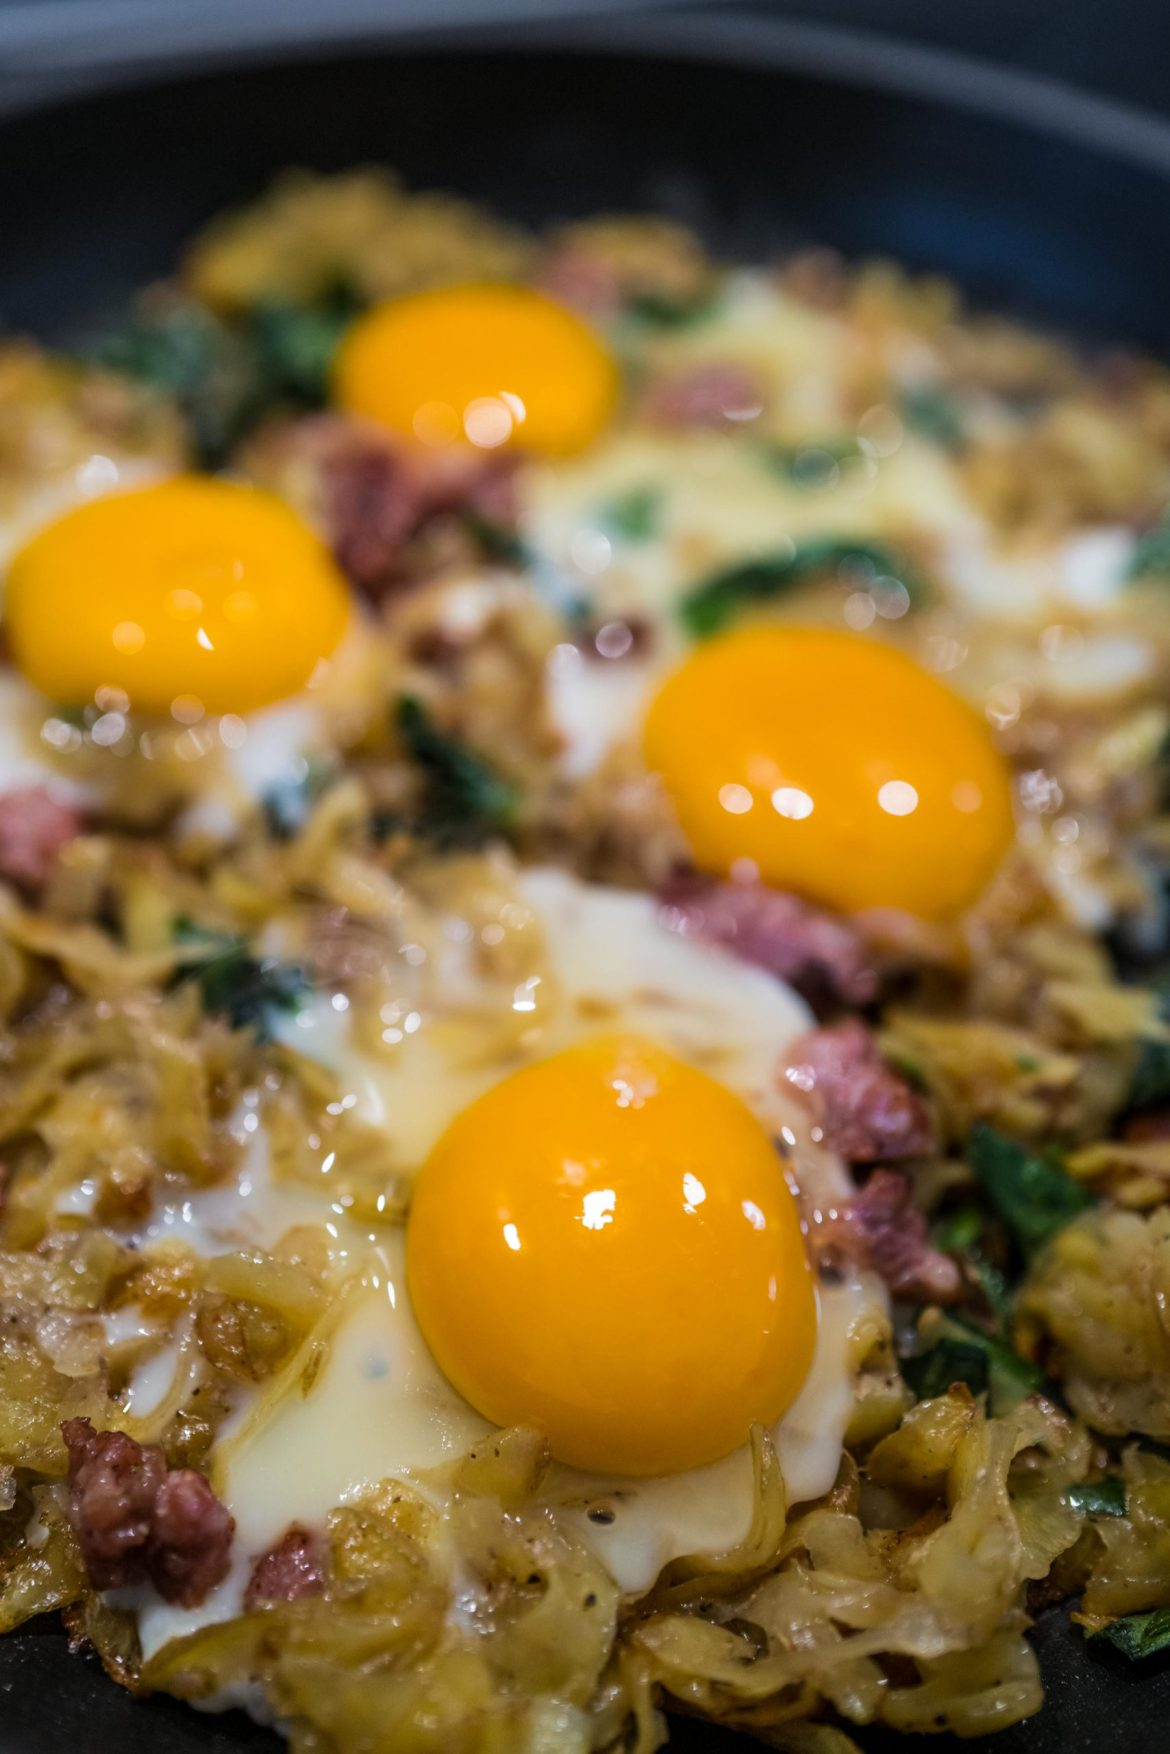 Top the homemade hash browns with farm fresh eggs for your breakfast or brunch. #eggs #hasnbrown #ramps